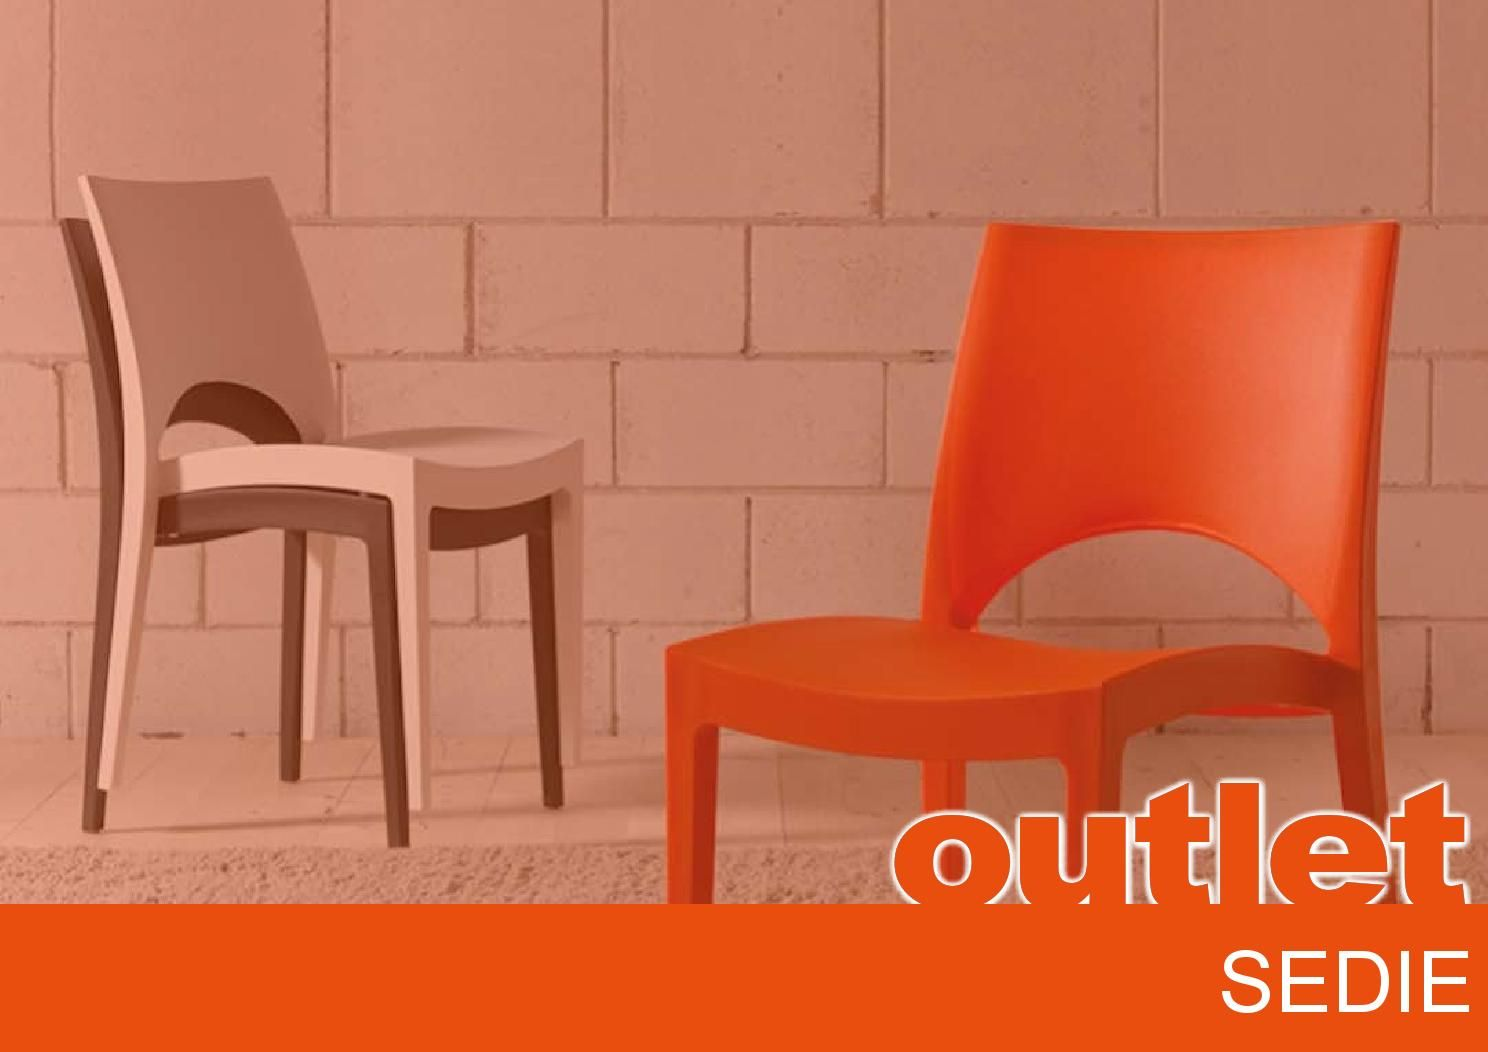 Asta Mobili Outlet Sedie | Outlets